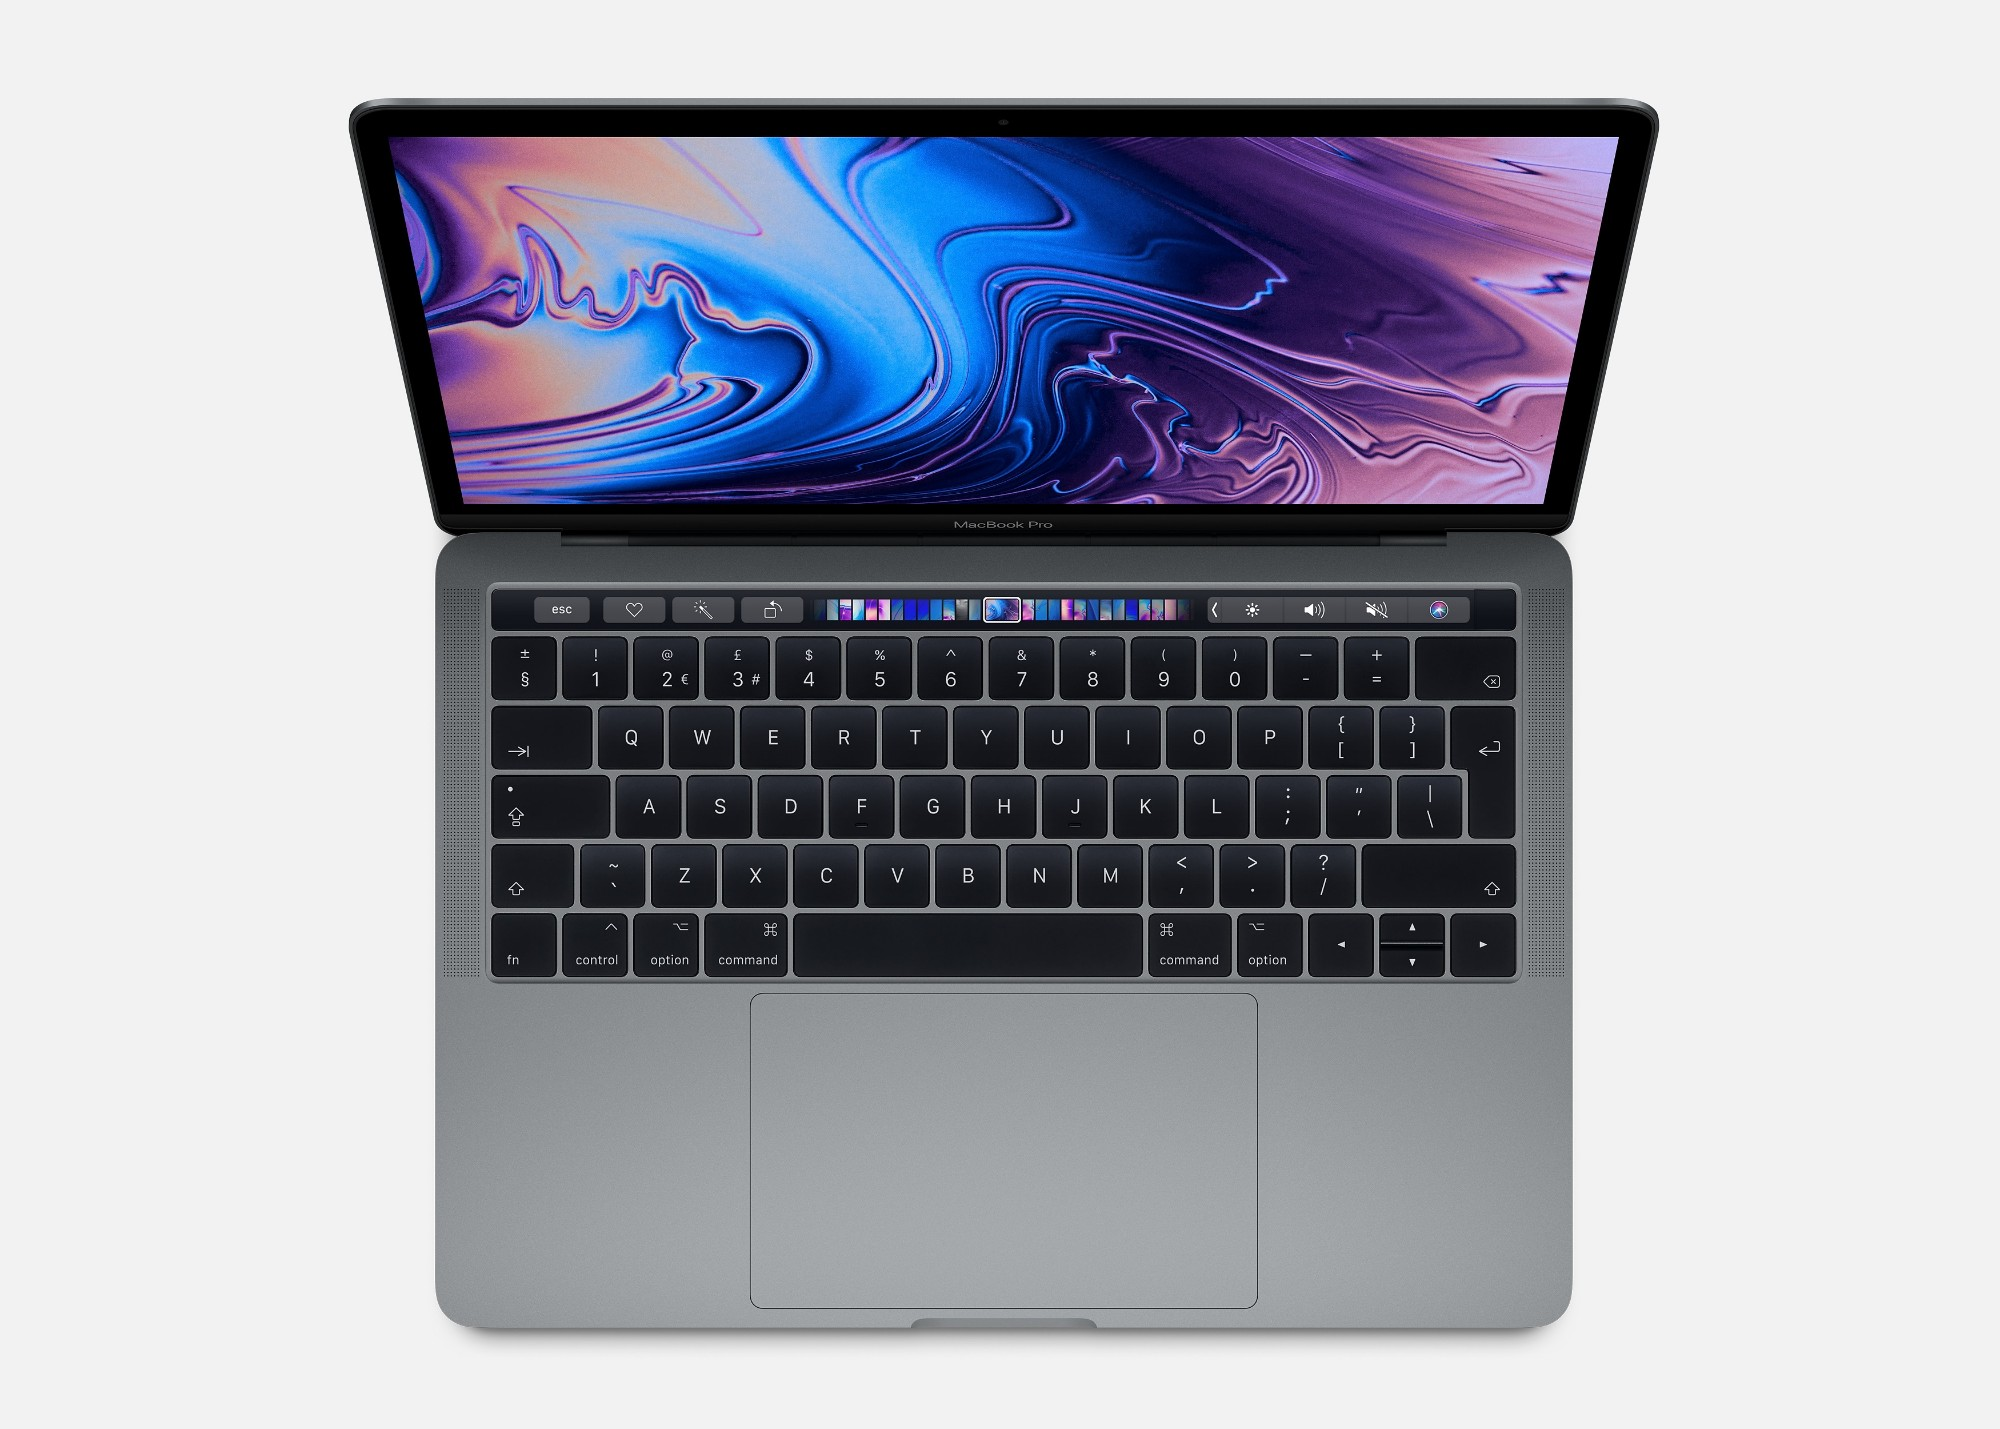 MacBook Pro - 13in - i5 1.4GHz - 8GB Ram - 128GB SSD - Touch Id - Space Gray